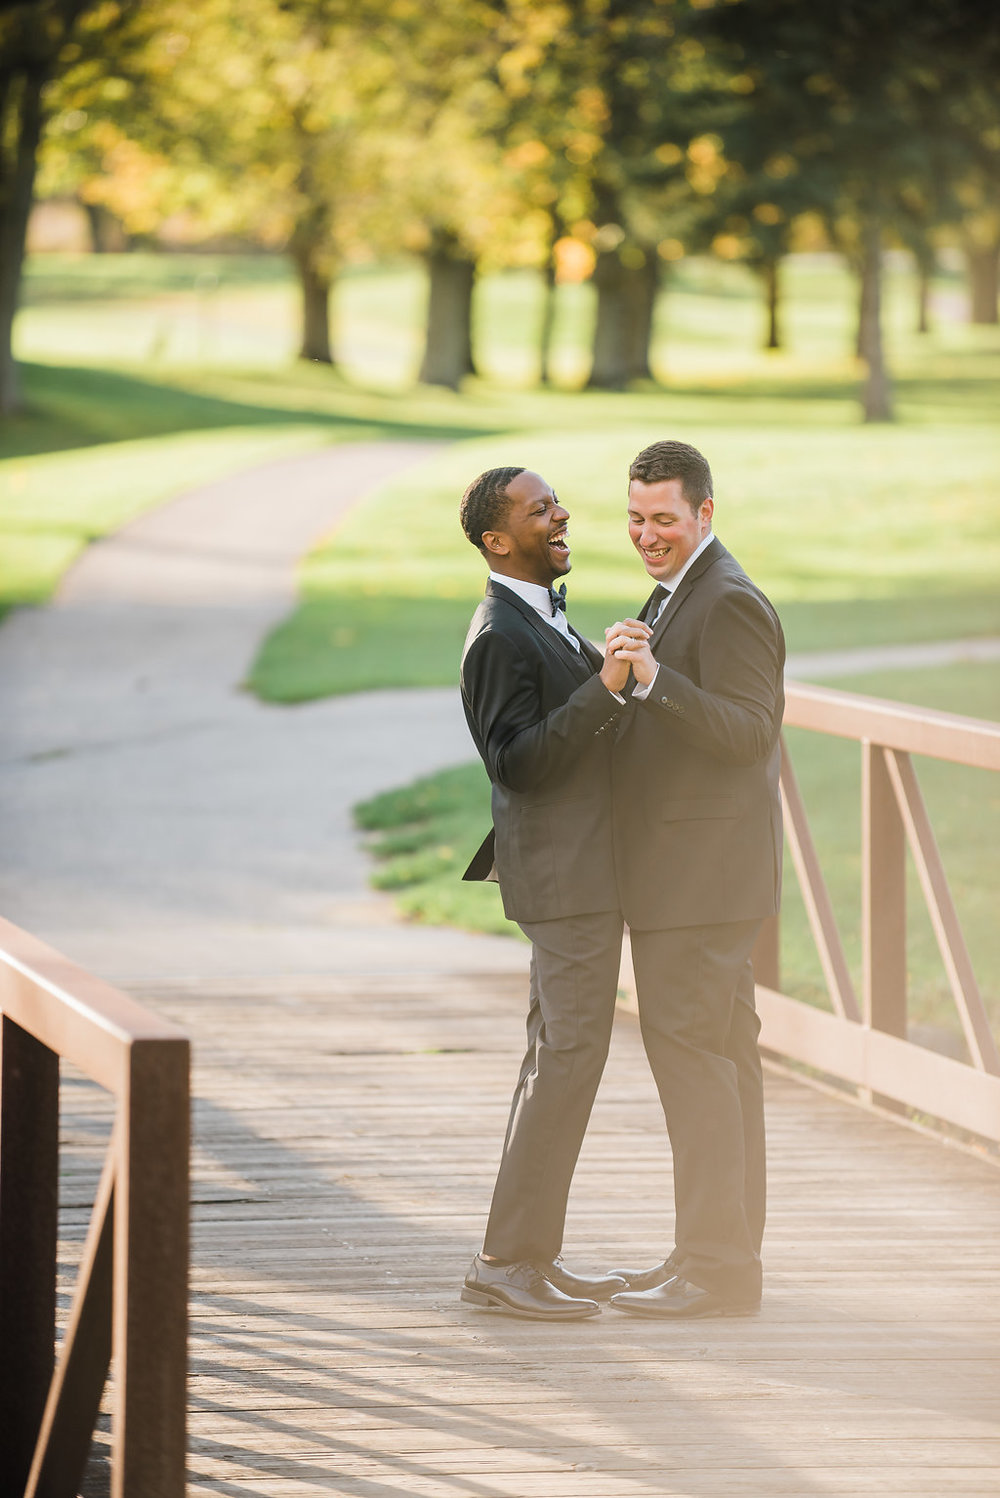 RiverClubofMequon-MequonWI-LGBT-Gay-StyledShoot-167.jpg